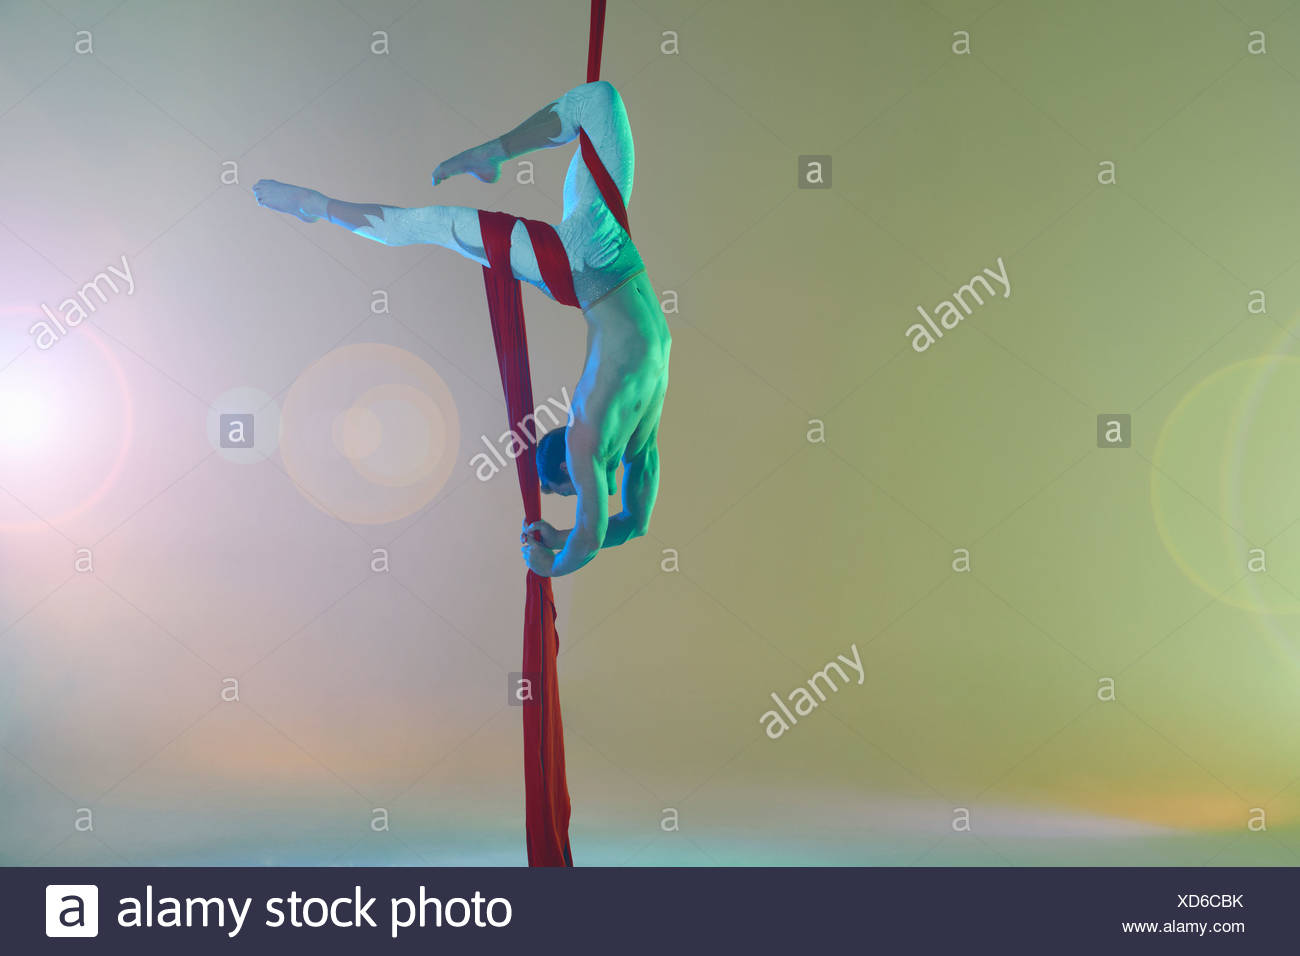 Aerial dancer with red ribbon upside down - Stock Image